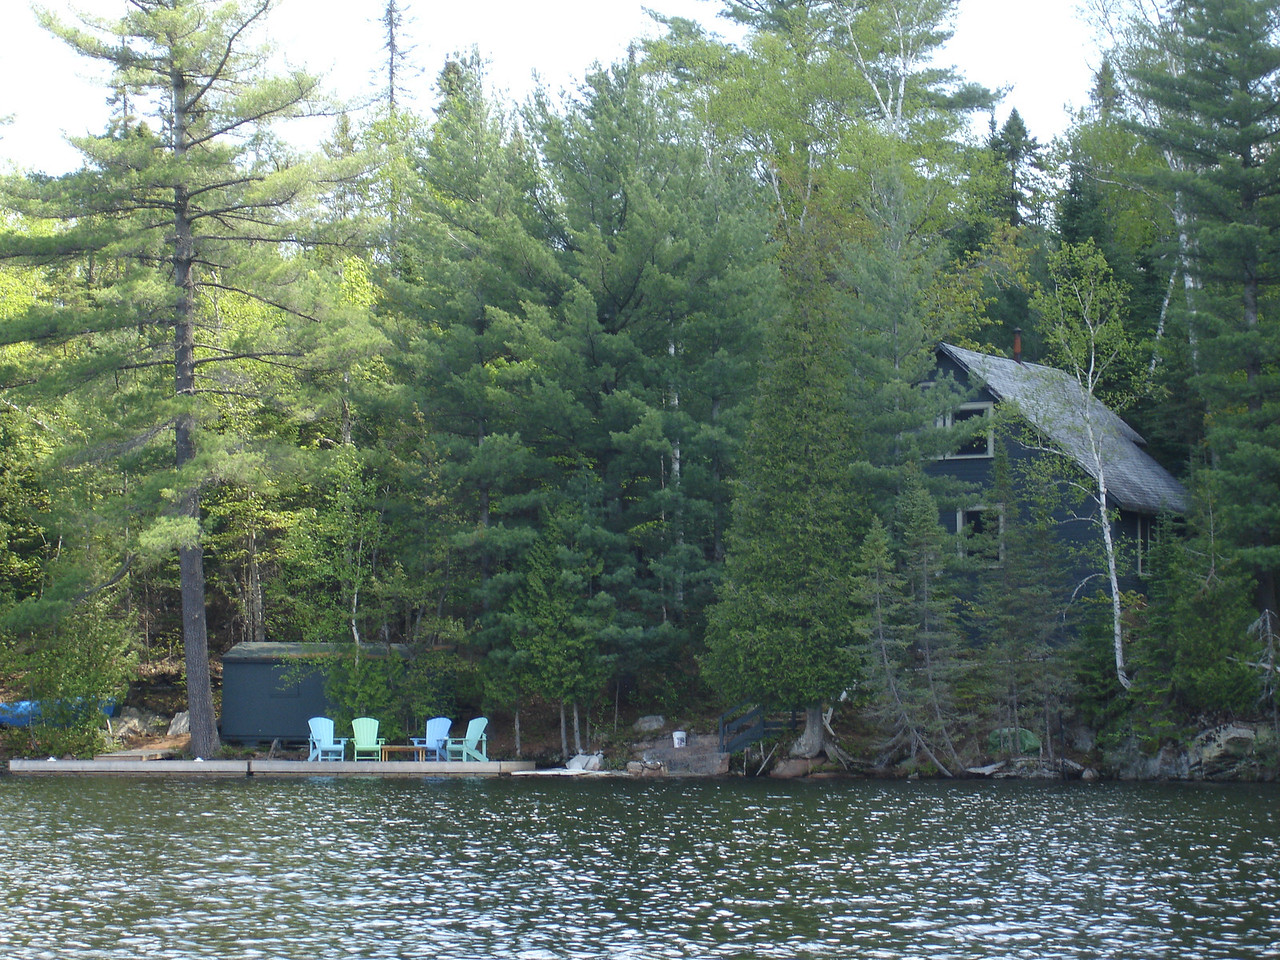 There are quite a few cottages on this route. This one is near the put in on Joe Lake.